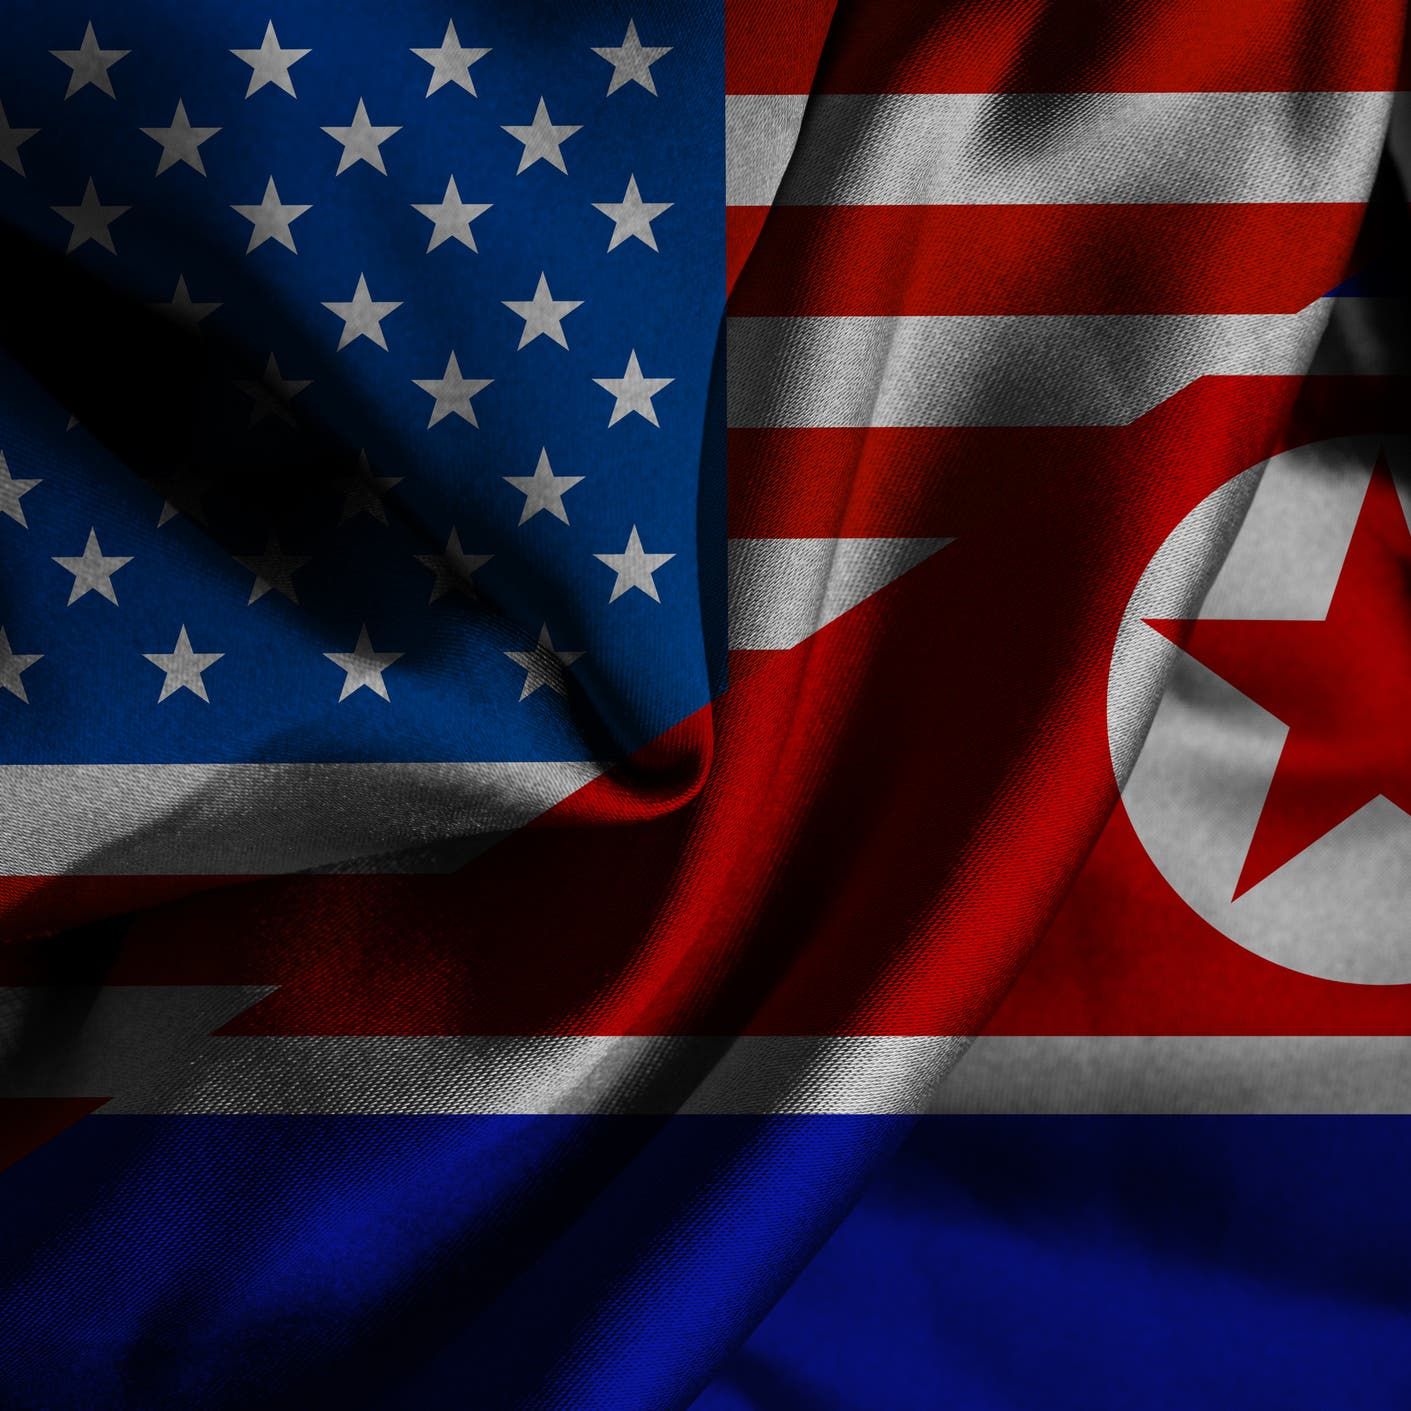 New US envoy for North Korea says looks forward to 'positive response' on dialogue